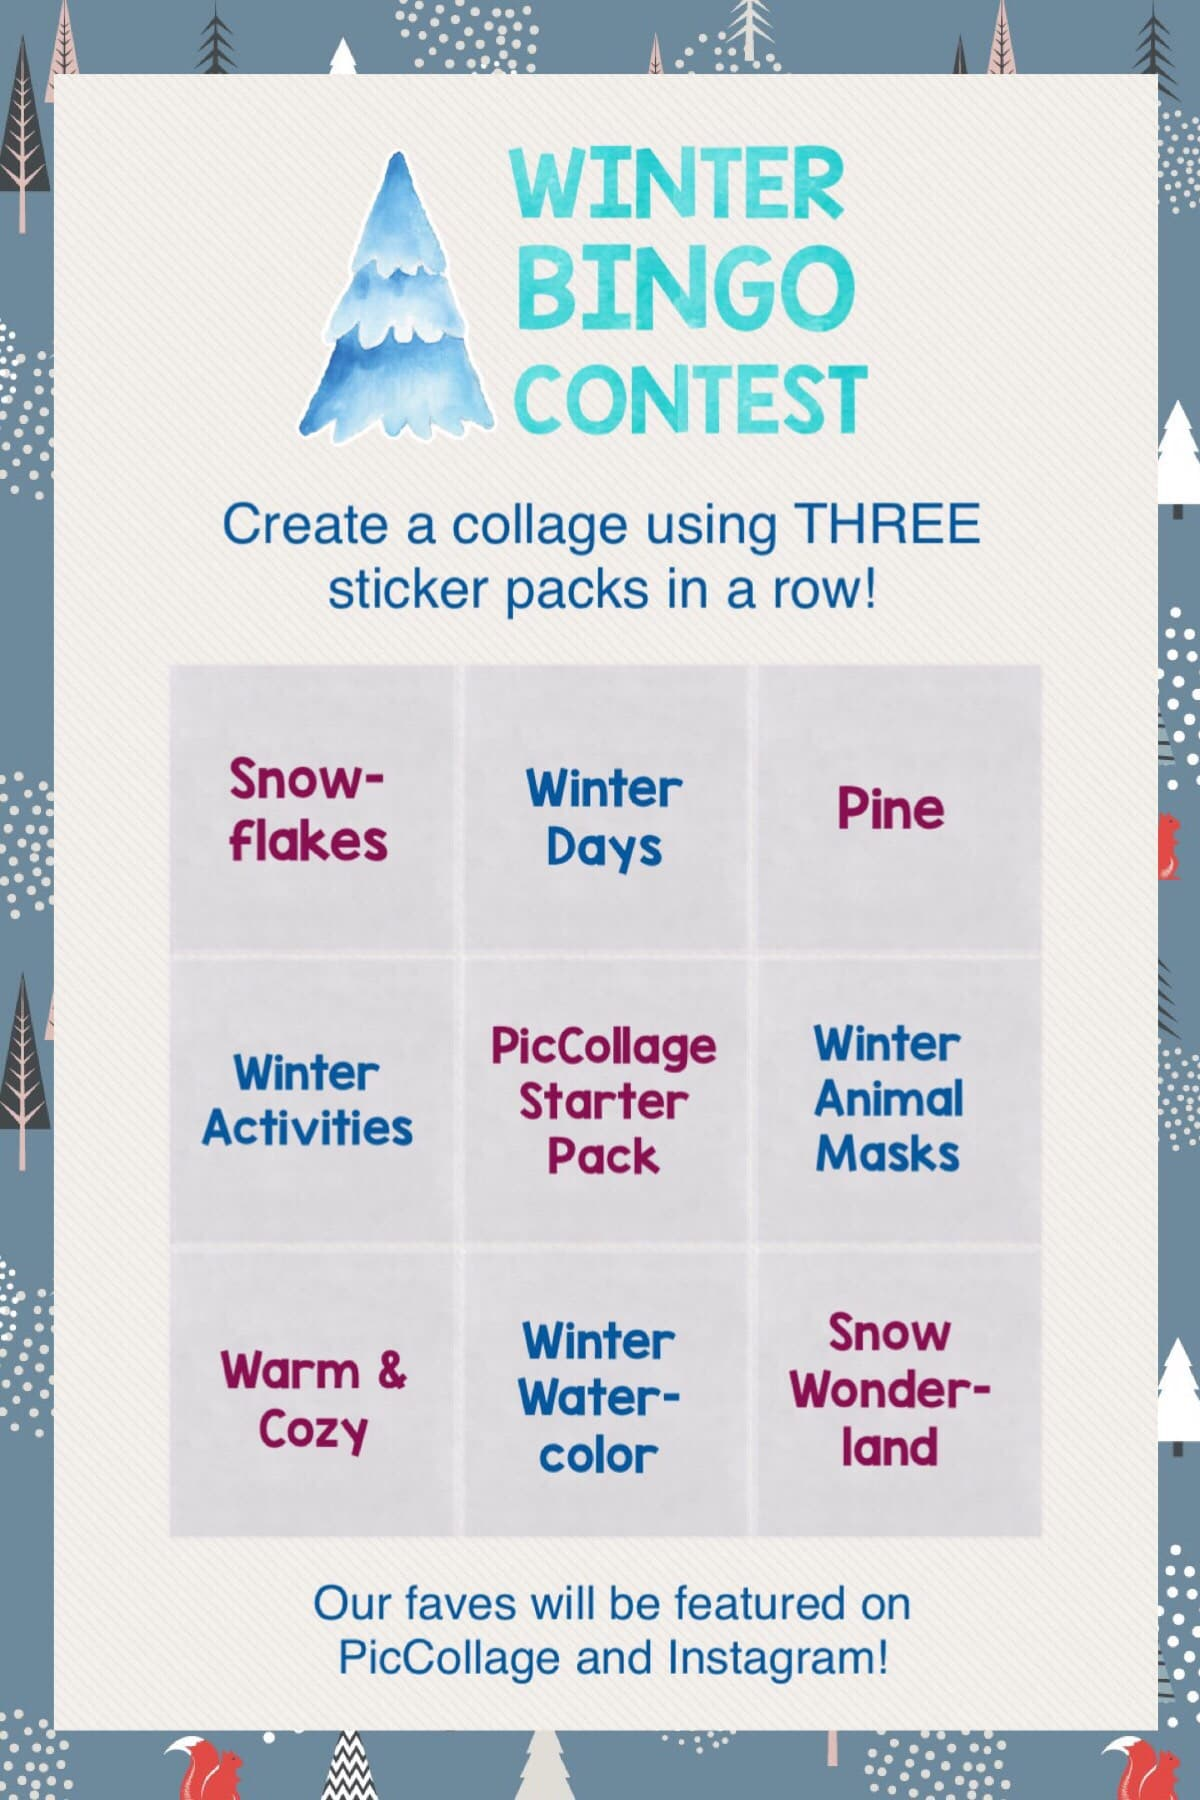 Use any THREE sticker packs in a row (horizontal / vertical / diagonal) to create a collage! Deadline is December 13, 2018! ❄️